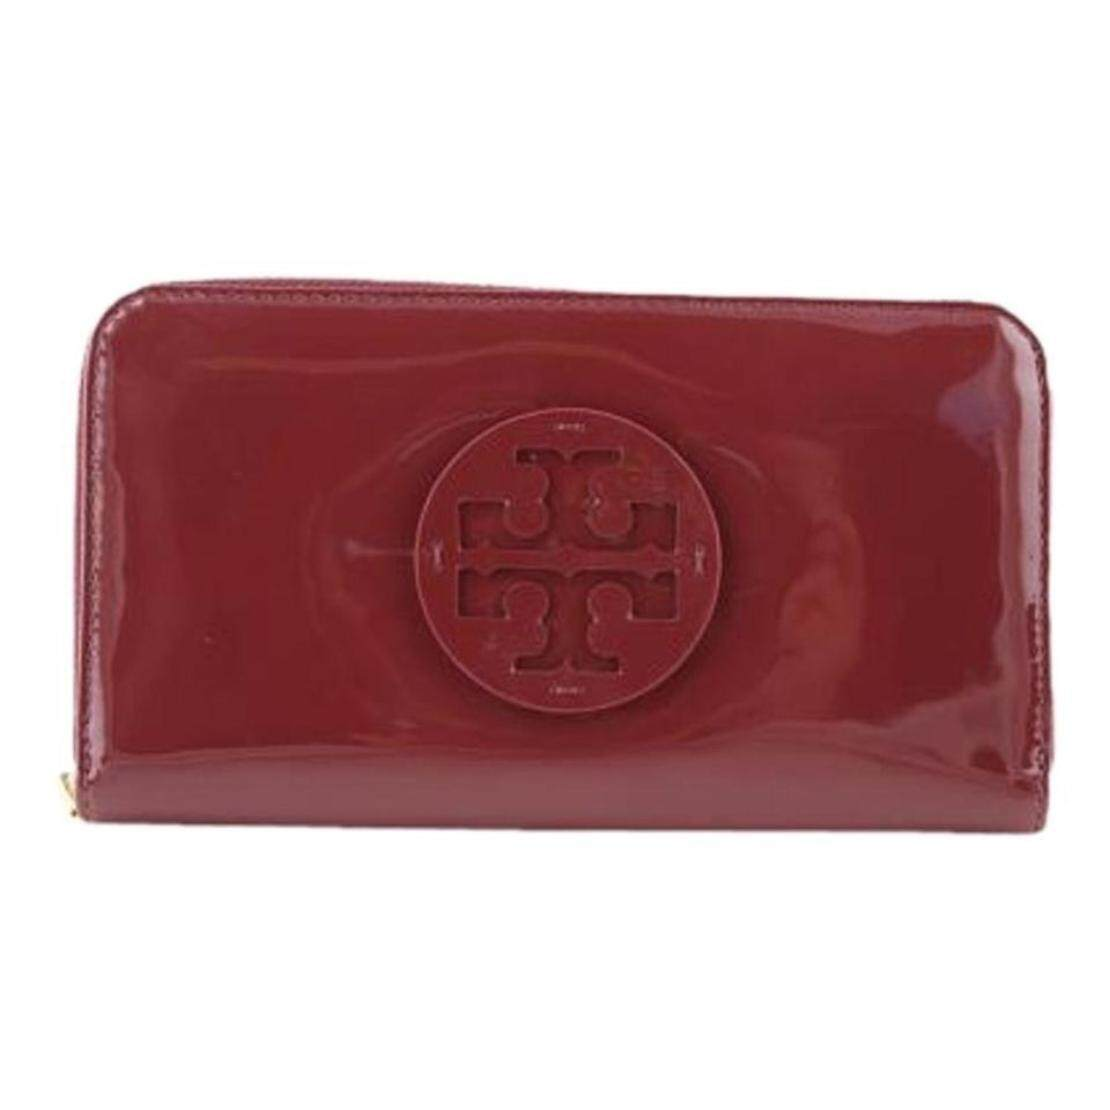 bd222d1bc1f0 Tory Burch Patent Leather Continental Wallet (equestrian orange)